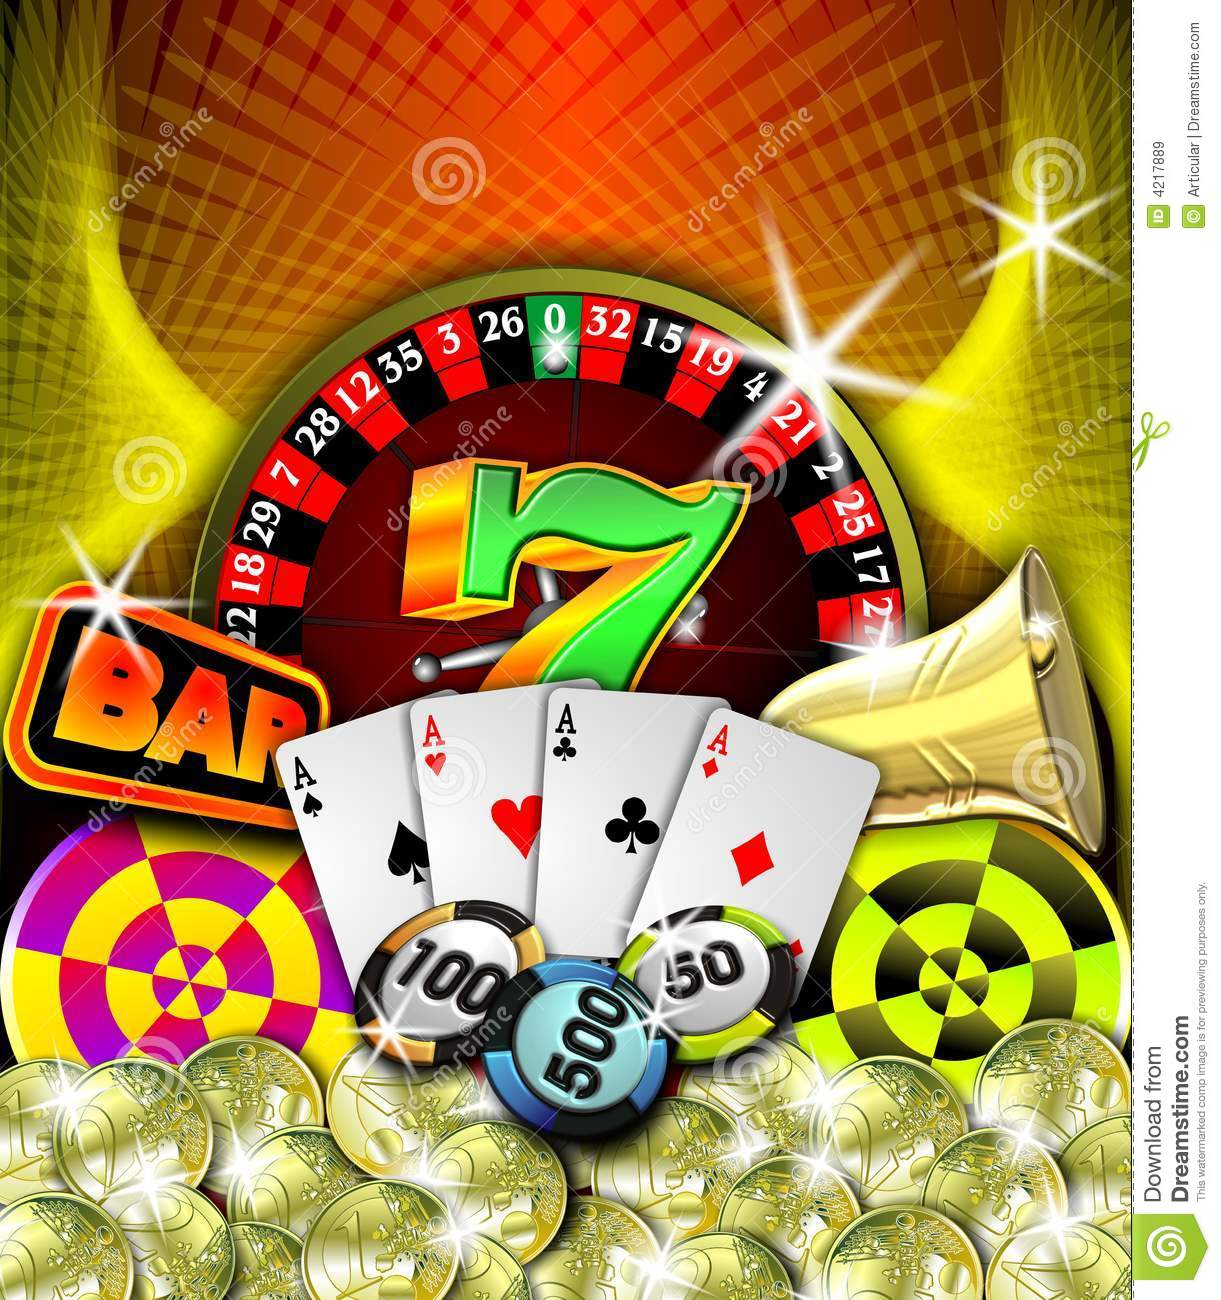 91,173 casino stock images are available royalty-free.